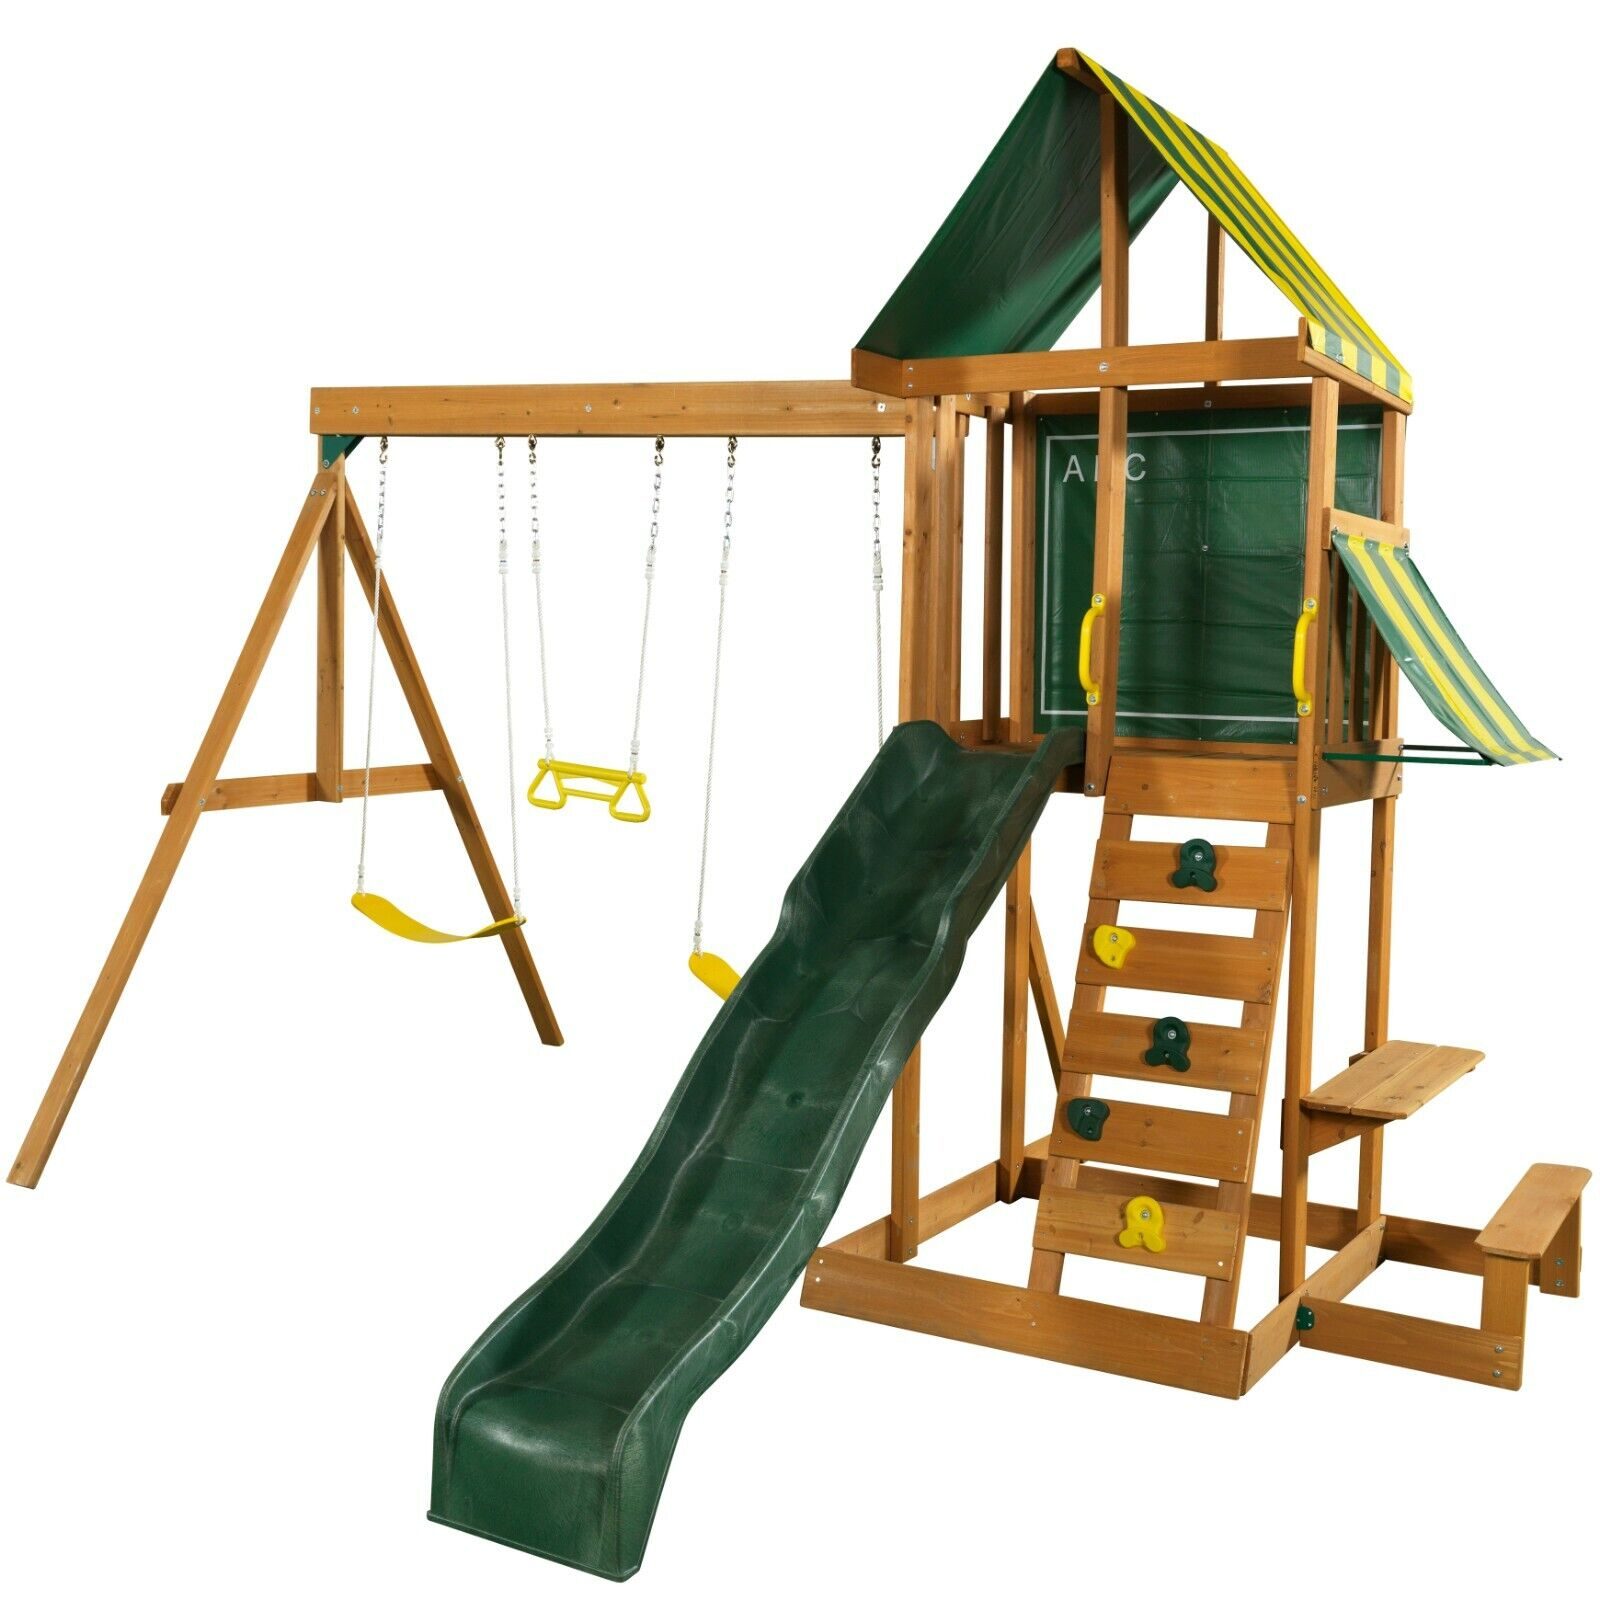 Spring Meadow Wooden Outdoor Playset with Slide and Swings b